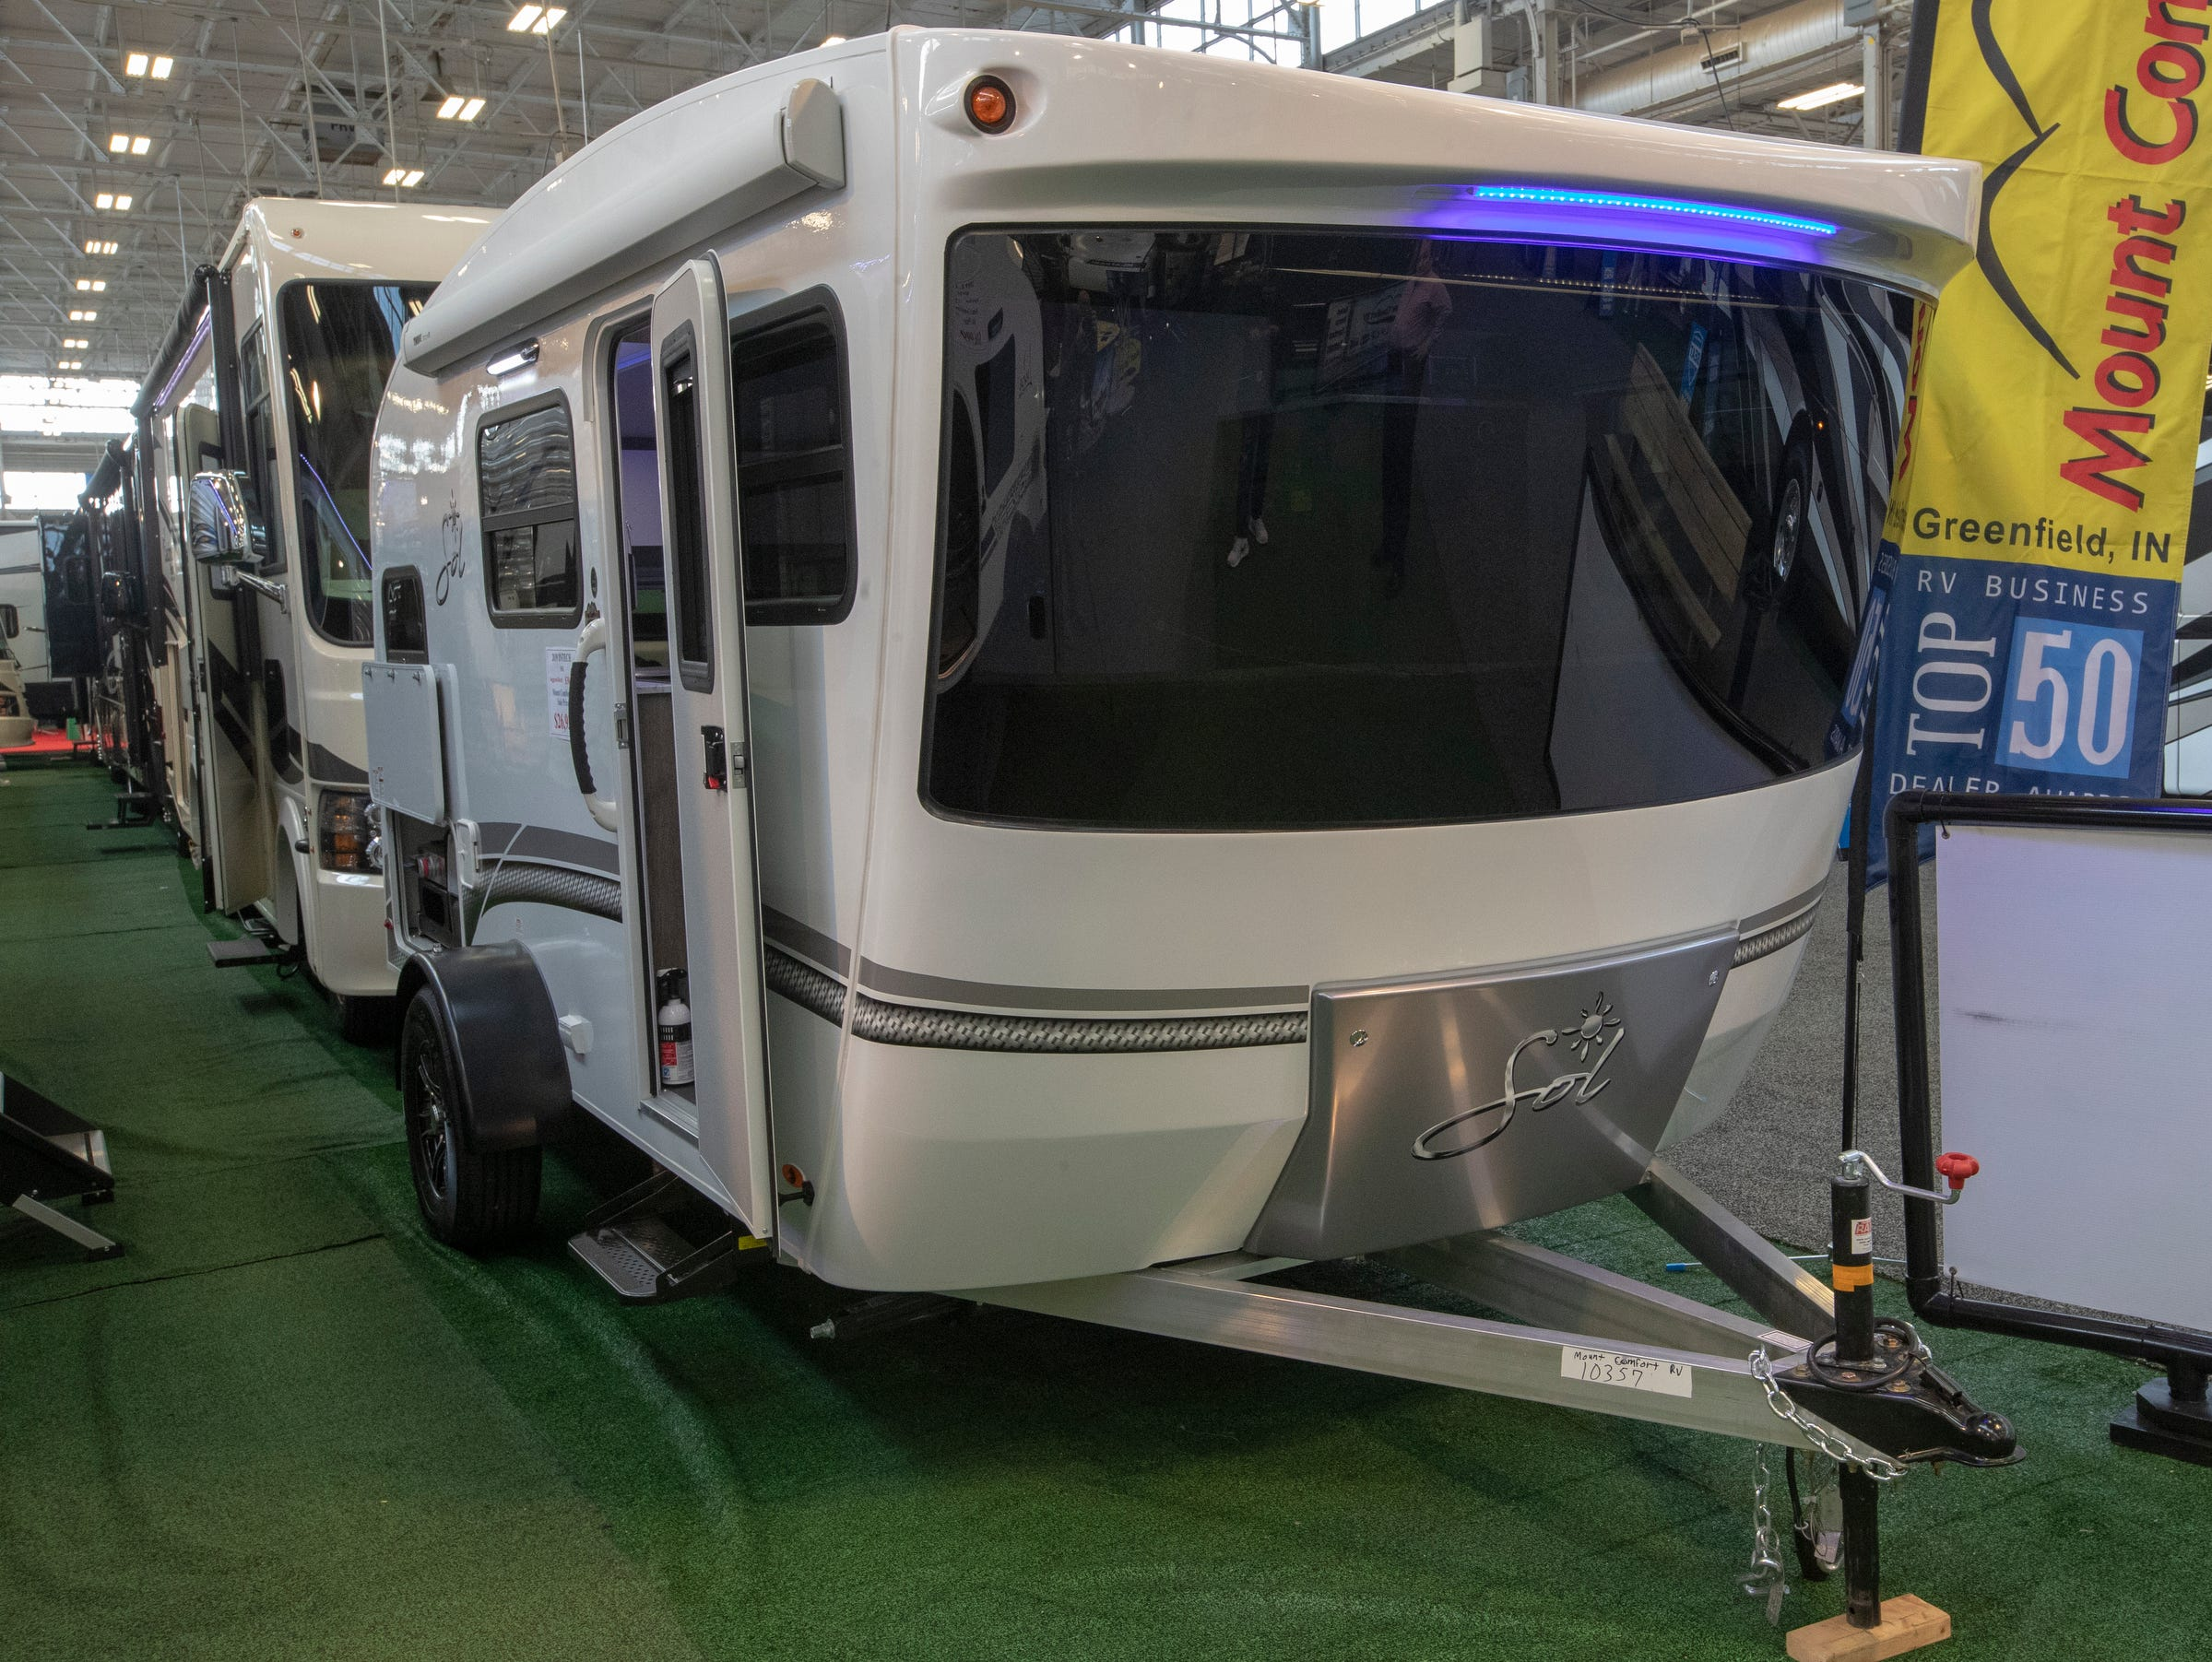 A 2019 Intech Sol, complete with a lot of modern touches like blue accent lights and a futuristic front end, at the Indy RV Expo, Indiana State Fairgrounds, Indianapolis, Sunday, January 6, 2019. The show runs through the 13th.